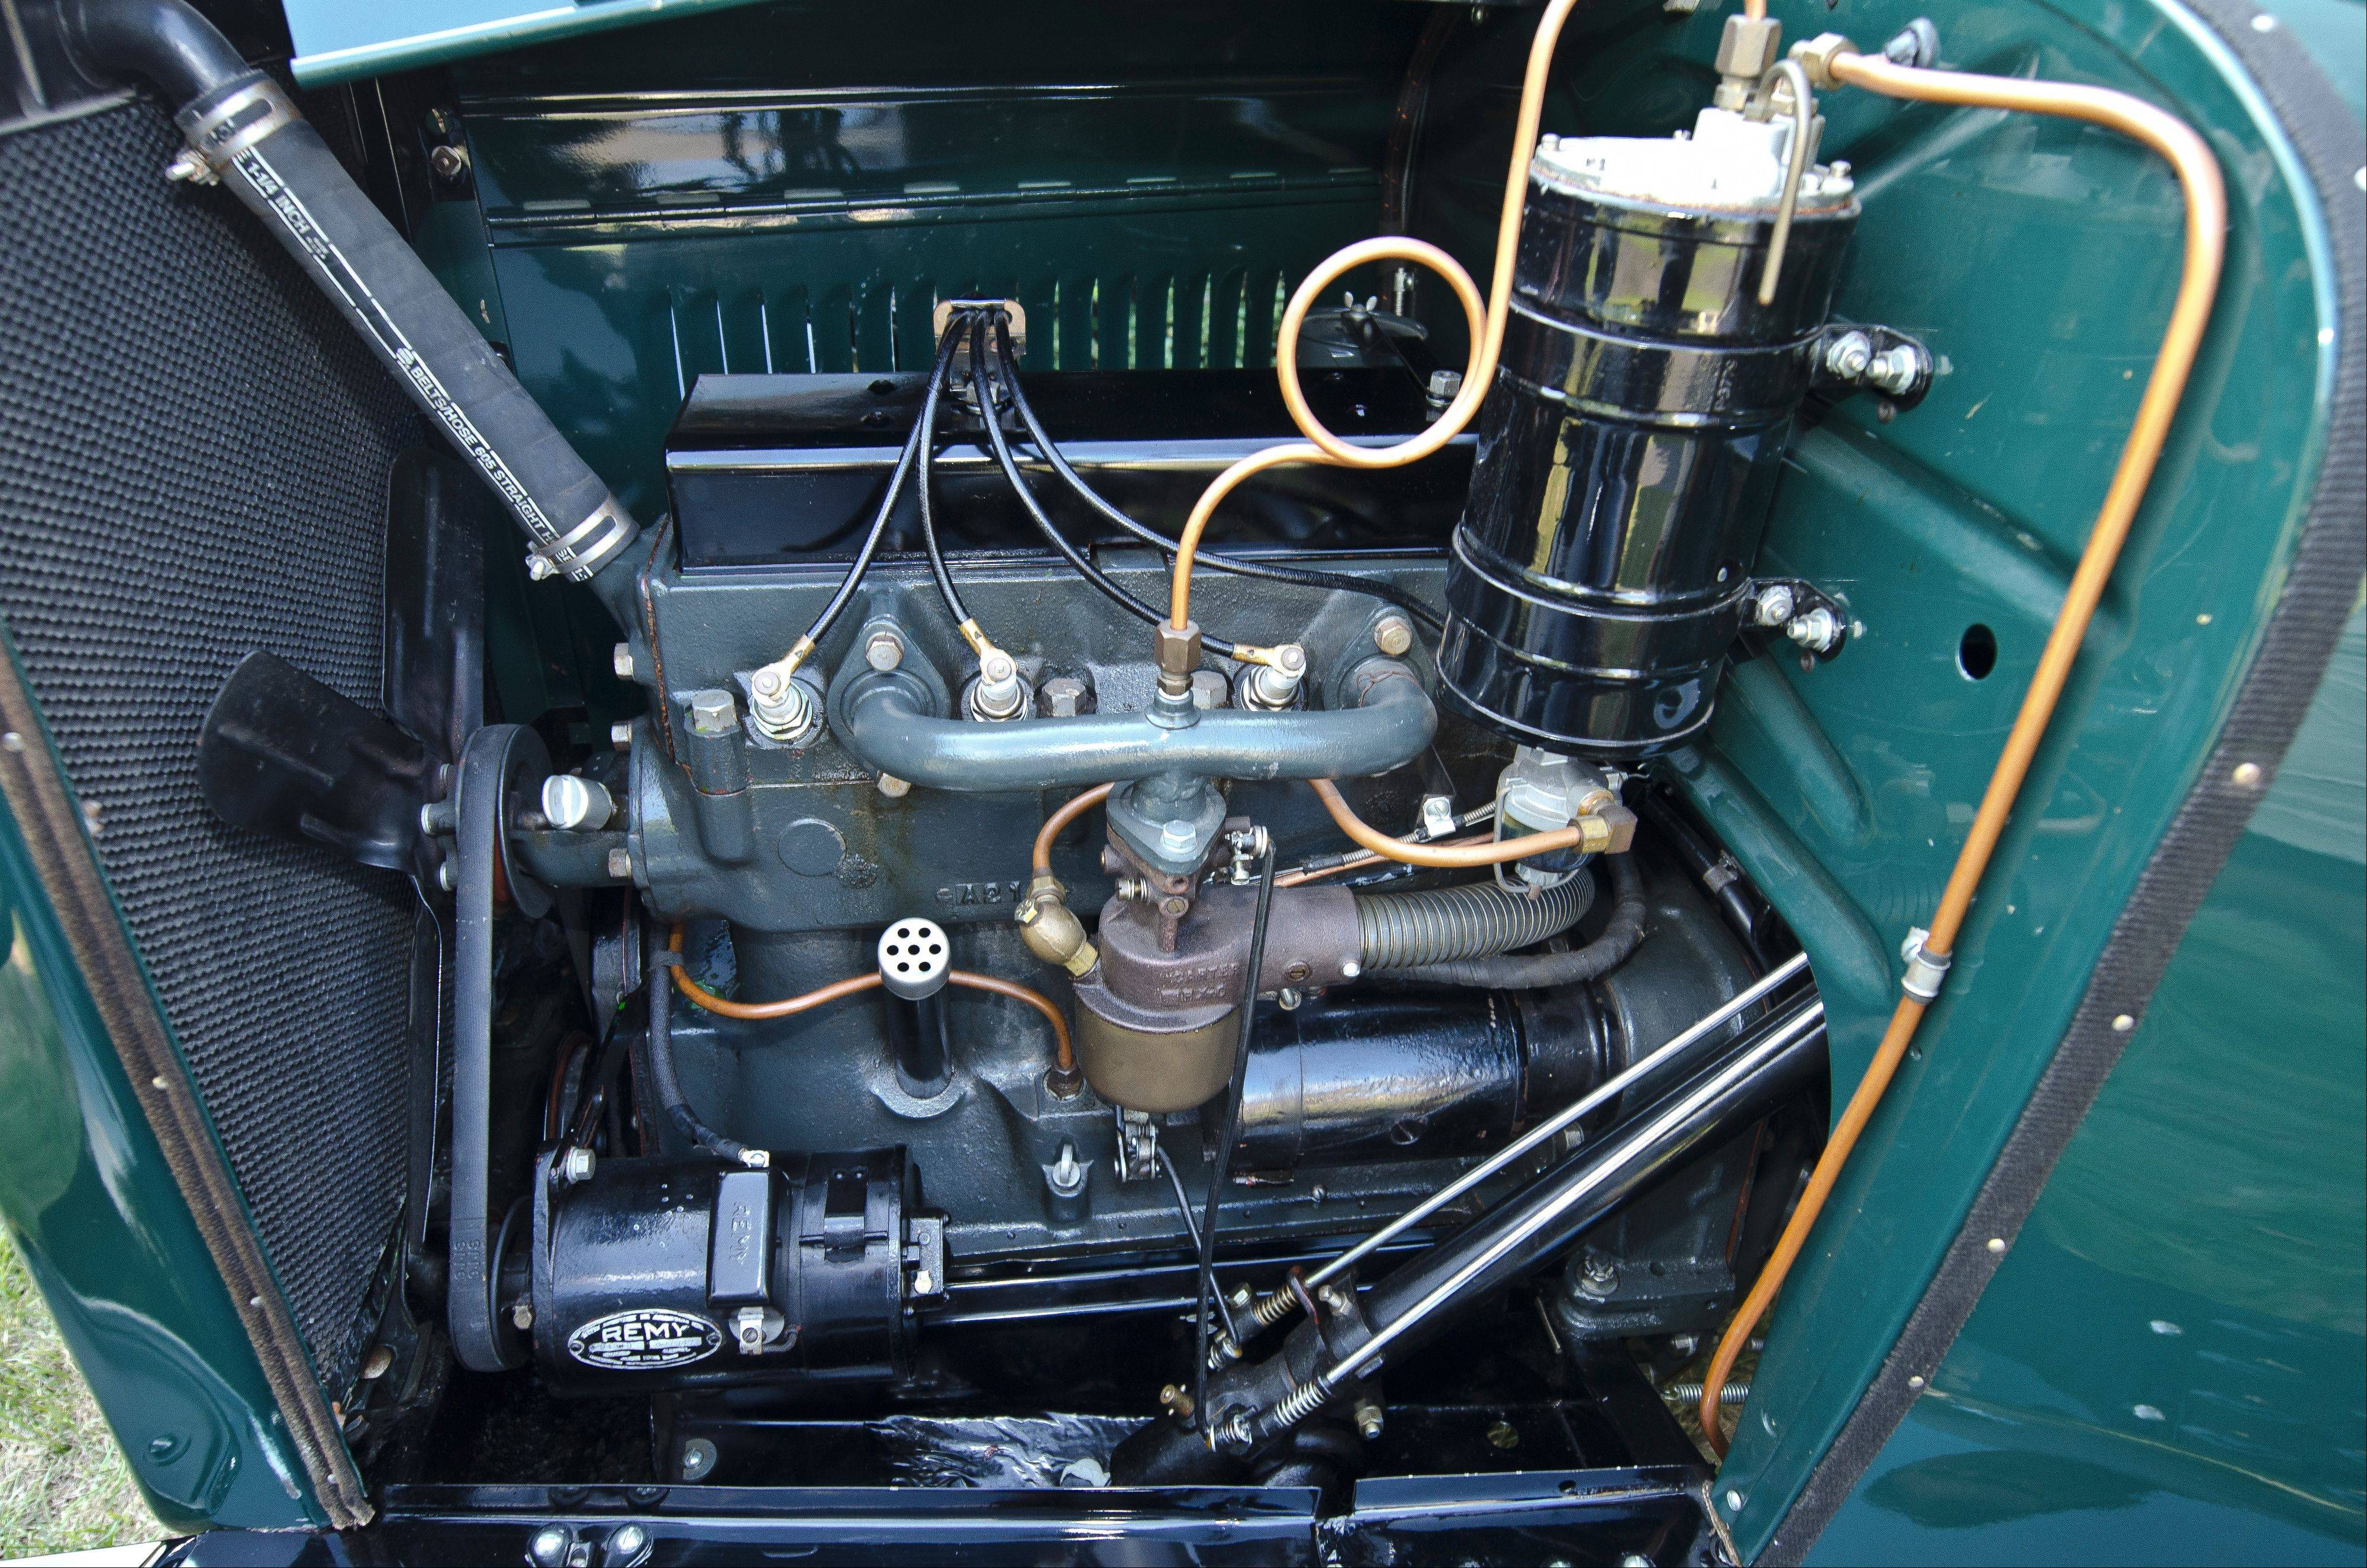 The four-cylinder engine is capable of producing 25 horsepower and 30 mph.